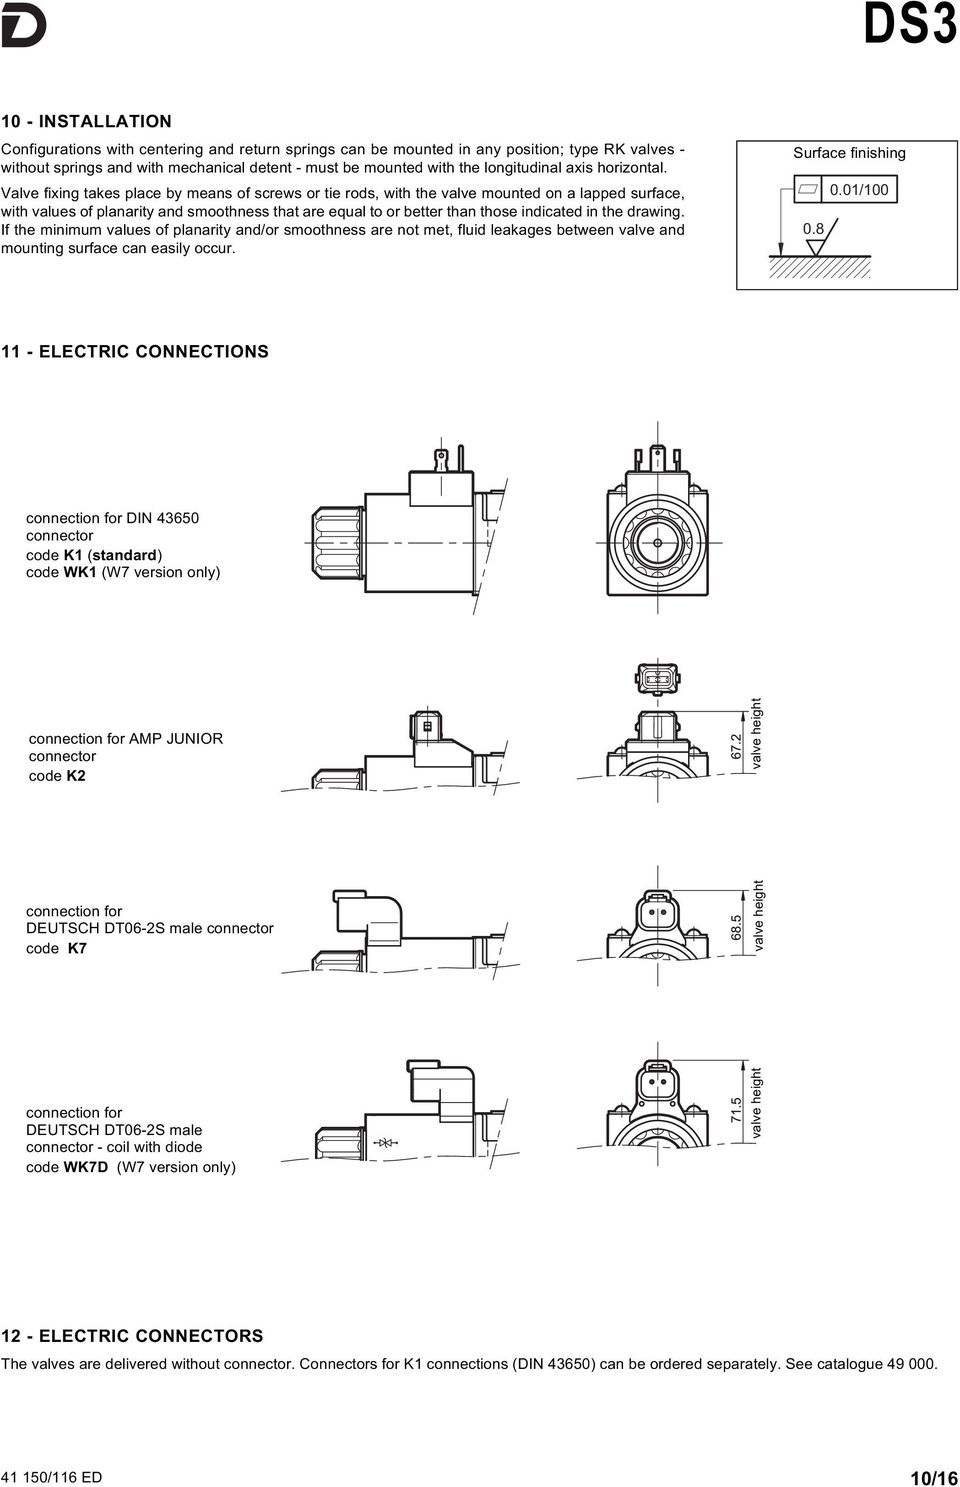 Valve fixing takes place by means of screws or tie rods, with the valve mounted on a lapped surface, with values of planarity and smoothness that are equal to or better than those indicated in the